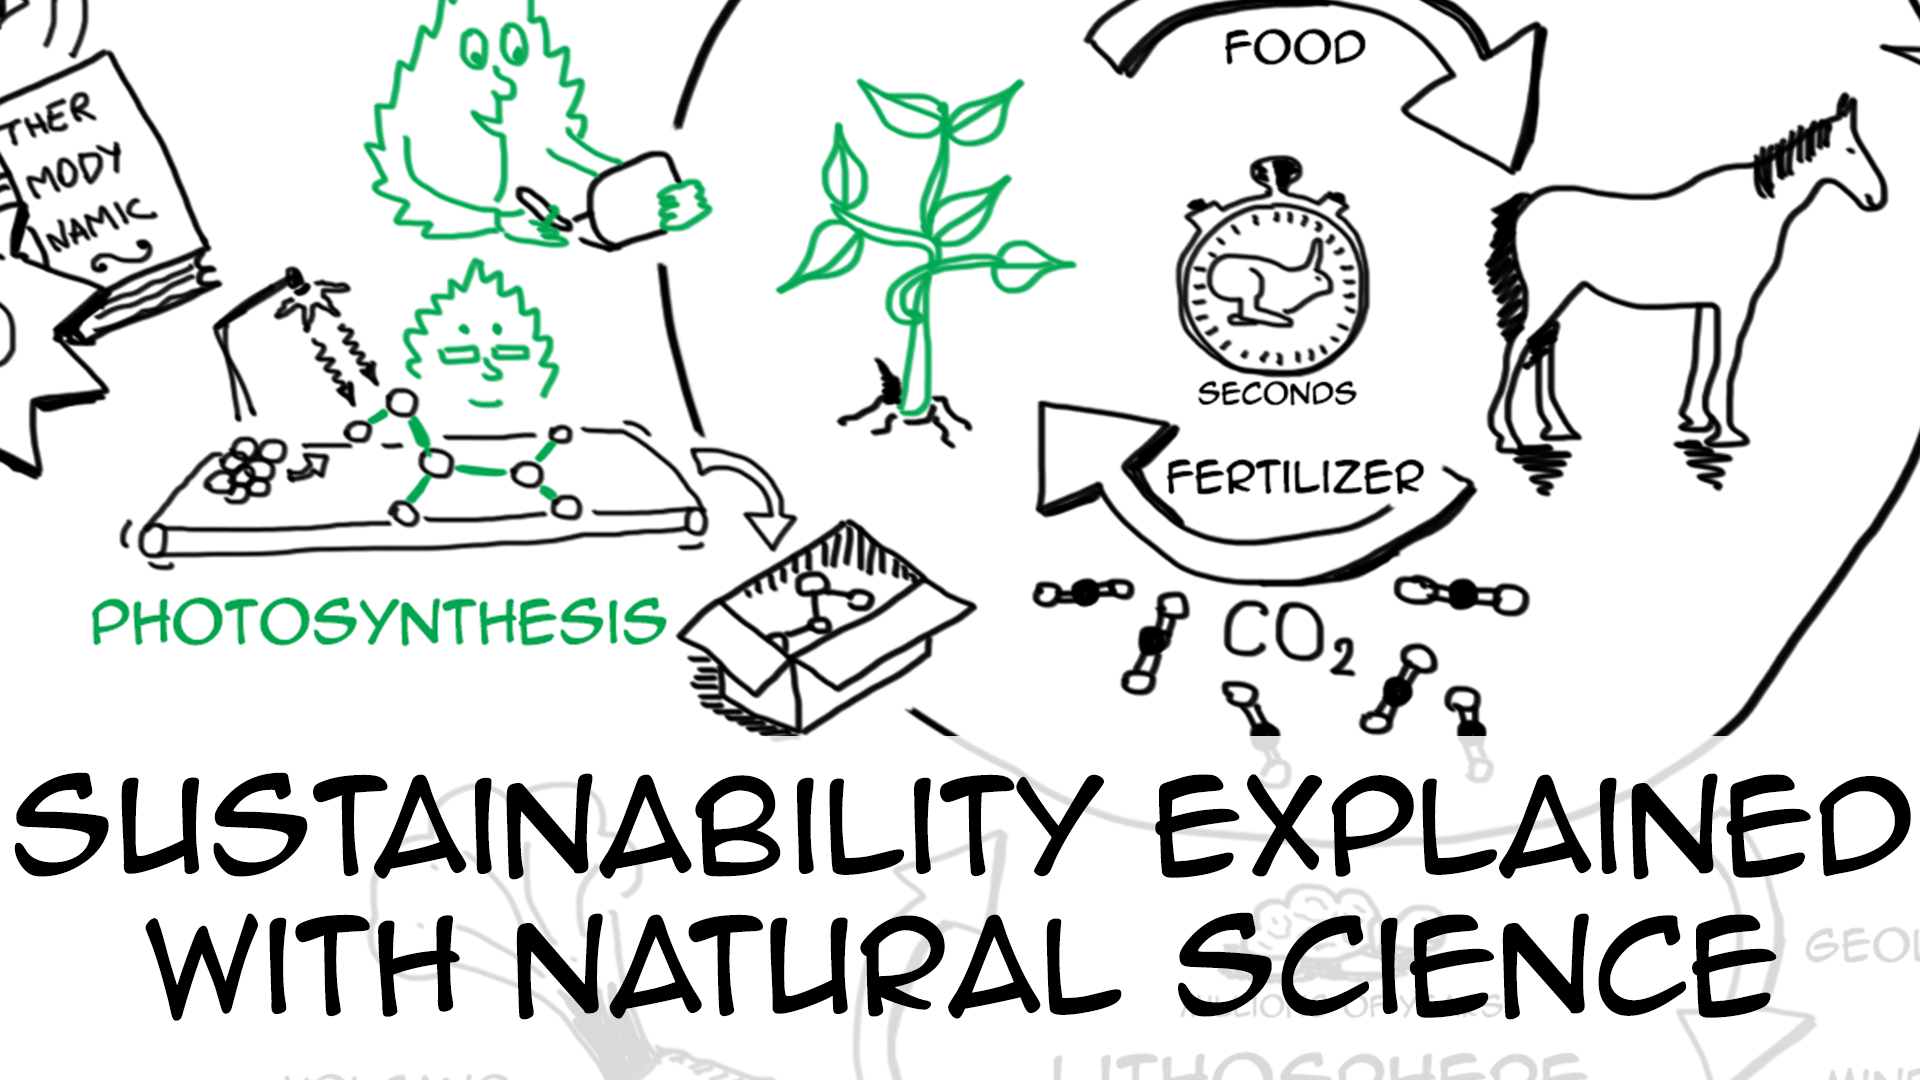 Sustainability explained with simple natural science